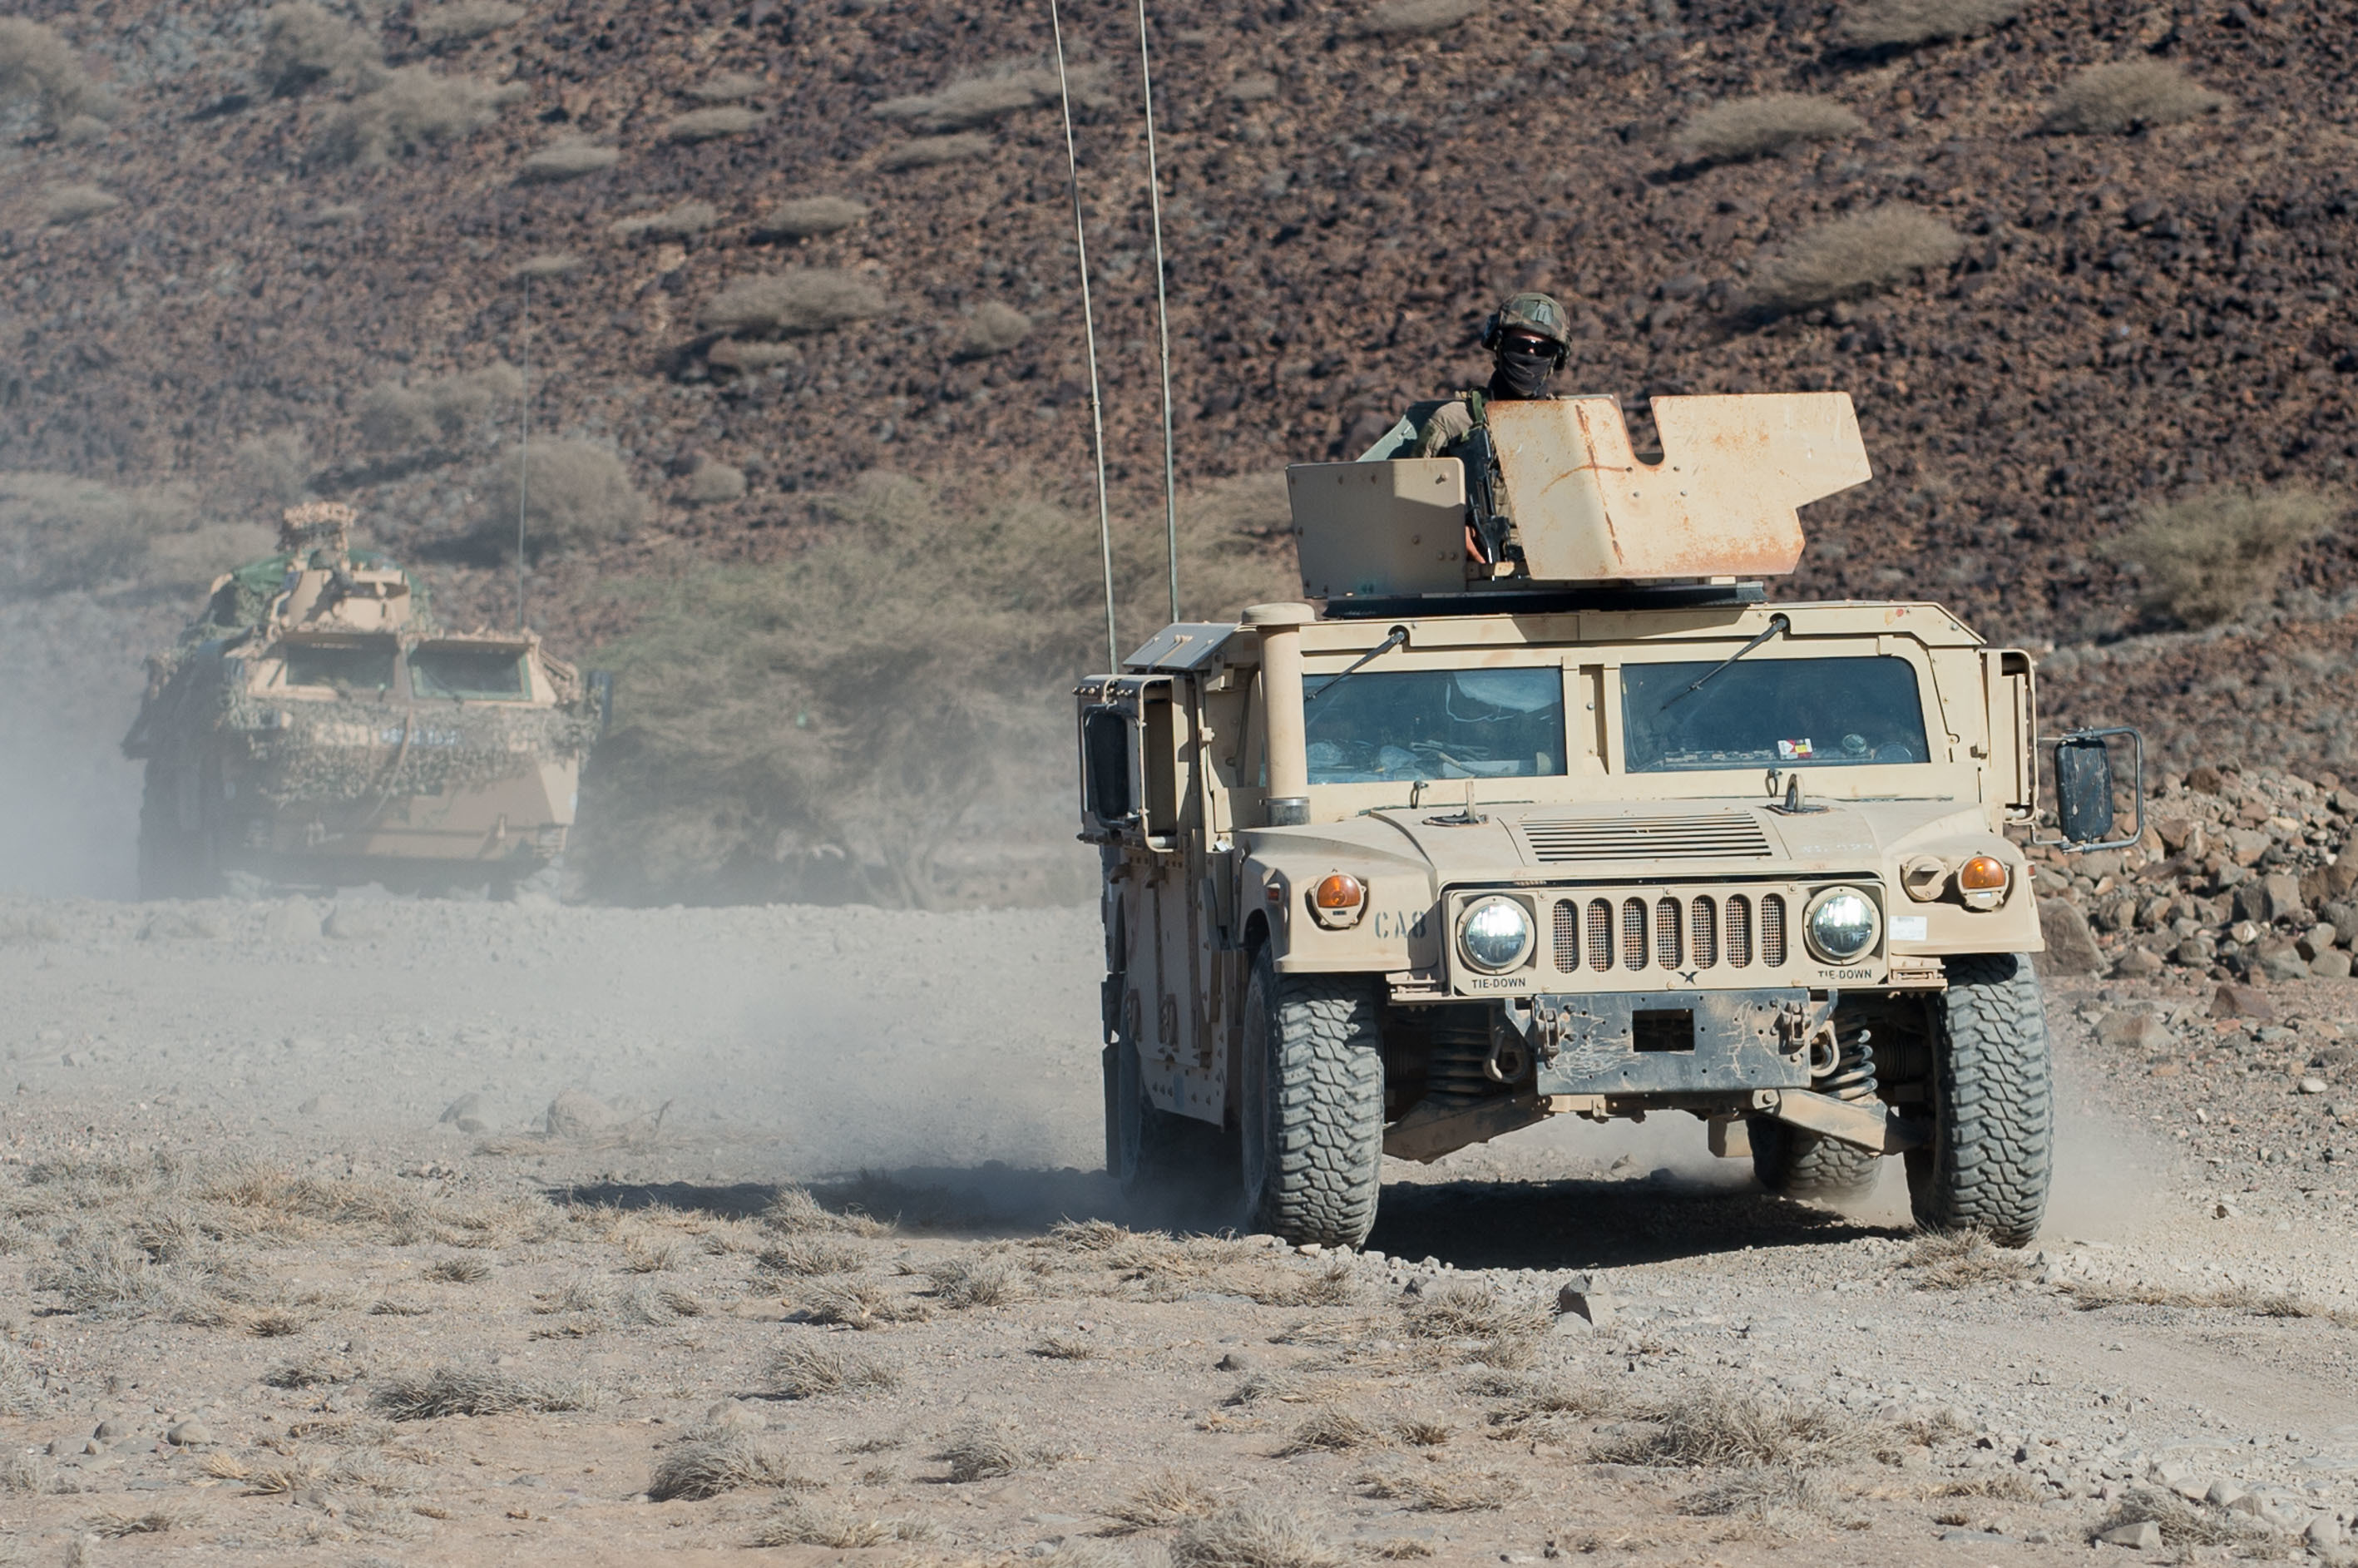 U.S. Army Soldiers assigned to Combined Joint Task Force-Horn of Africa and French army soldiers drive a U.S. Humvee and a French armored vanguard vehicle during a French Desert Commando Course in Arta, Djibouti, May 15, 2019. The six-day course consisted of three exercises lasting two days each in company squad training, platoon squad training and live fire scenarios. (Courtesy Photo)